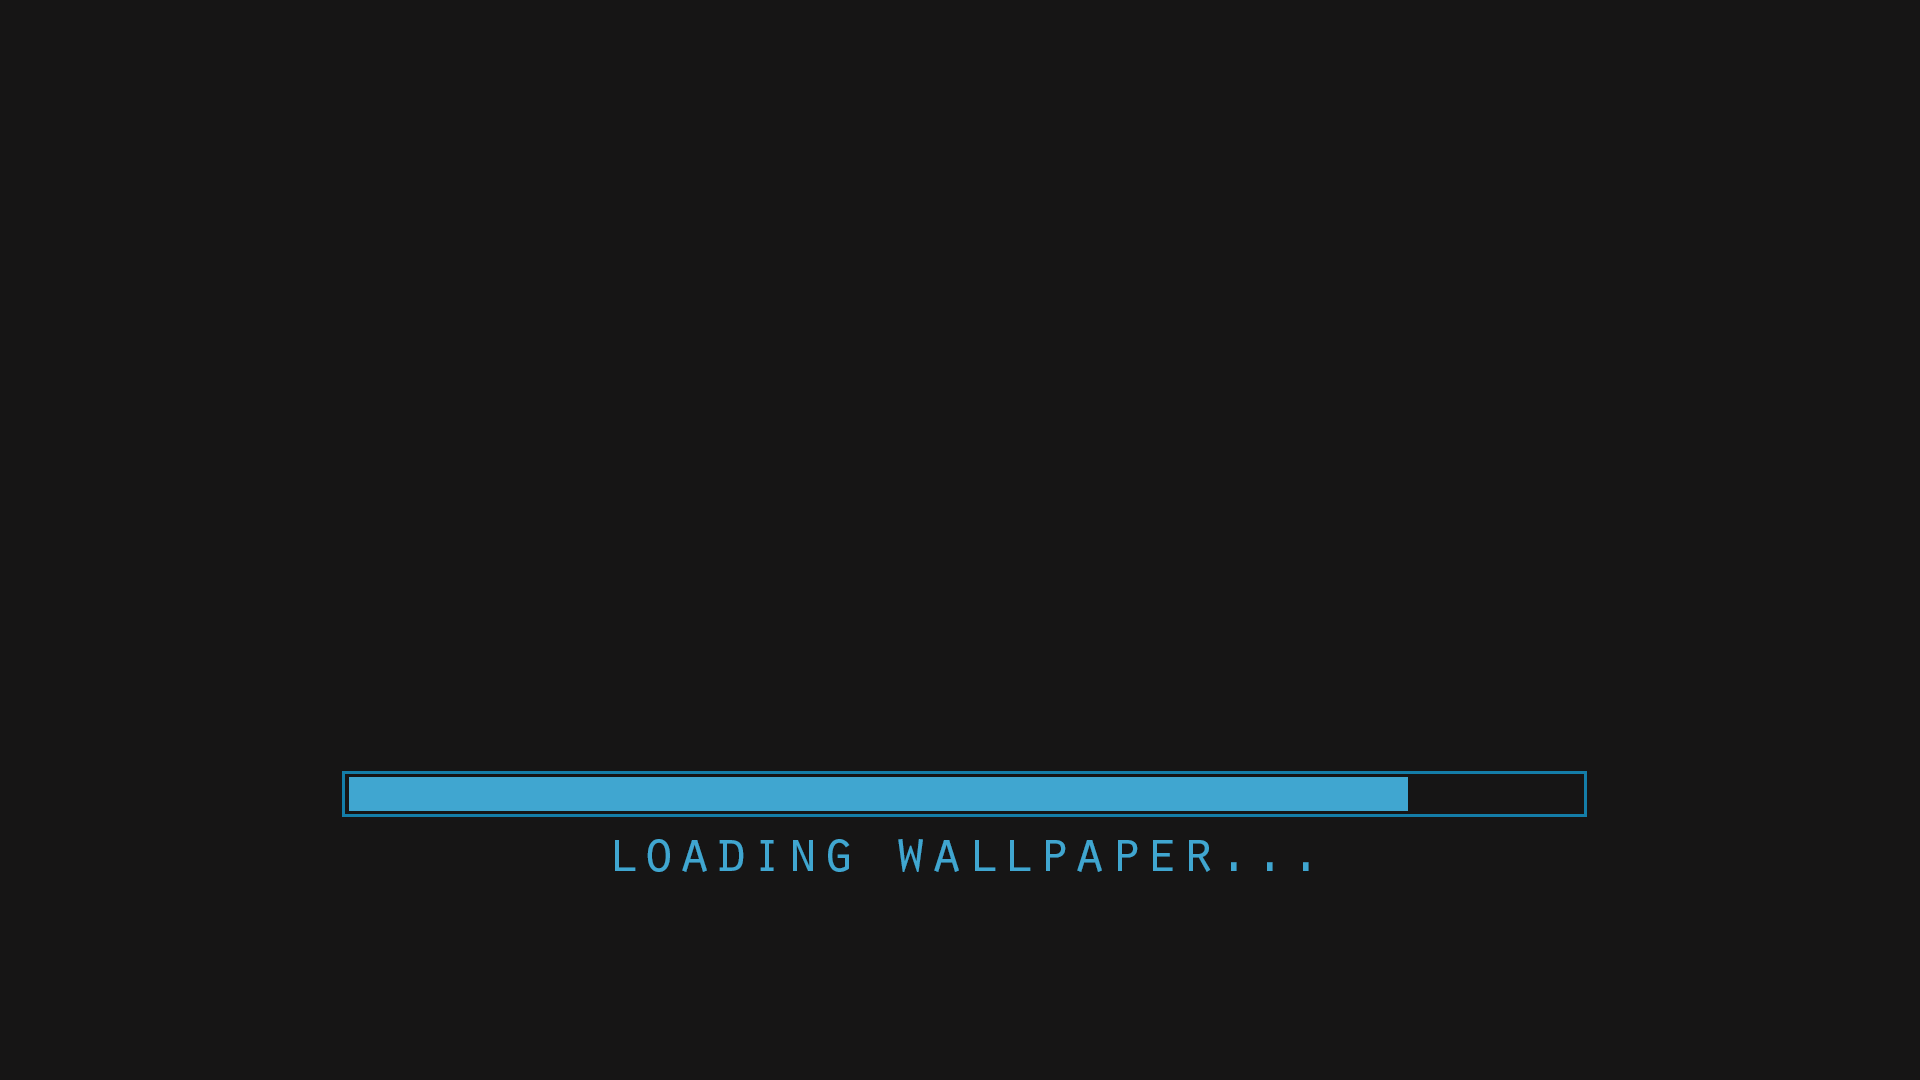 5 Days Of Awesome Wallpapers Minimalist Wallpapers